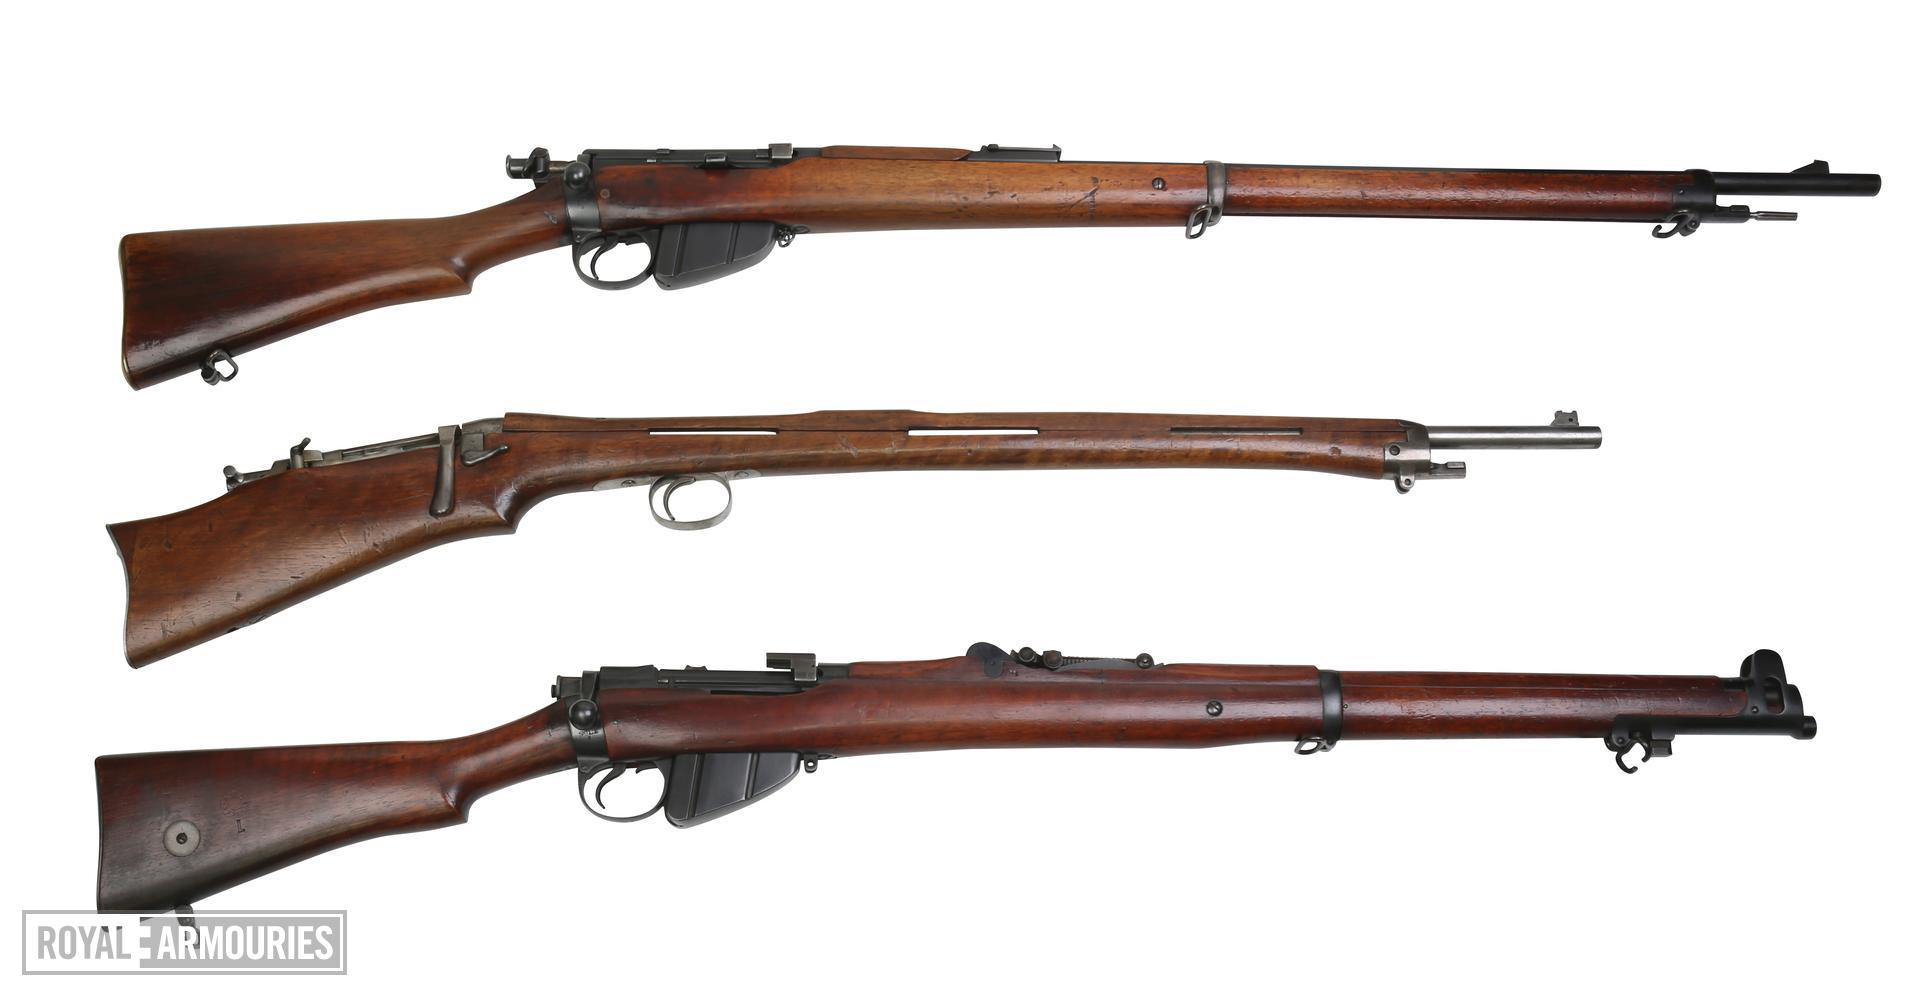 Comparison shot of 3 centrefire rifles. Thorneycroft First Pattern PR.5827. Lee Enfield Mk.I, sealed pattern PR.5711.  SMLE Mk.I 2nd Pattern PR.5776